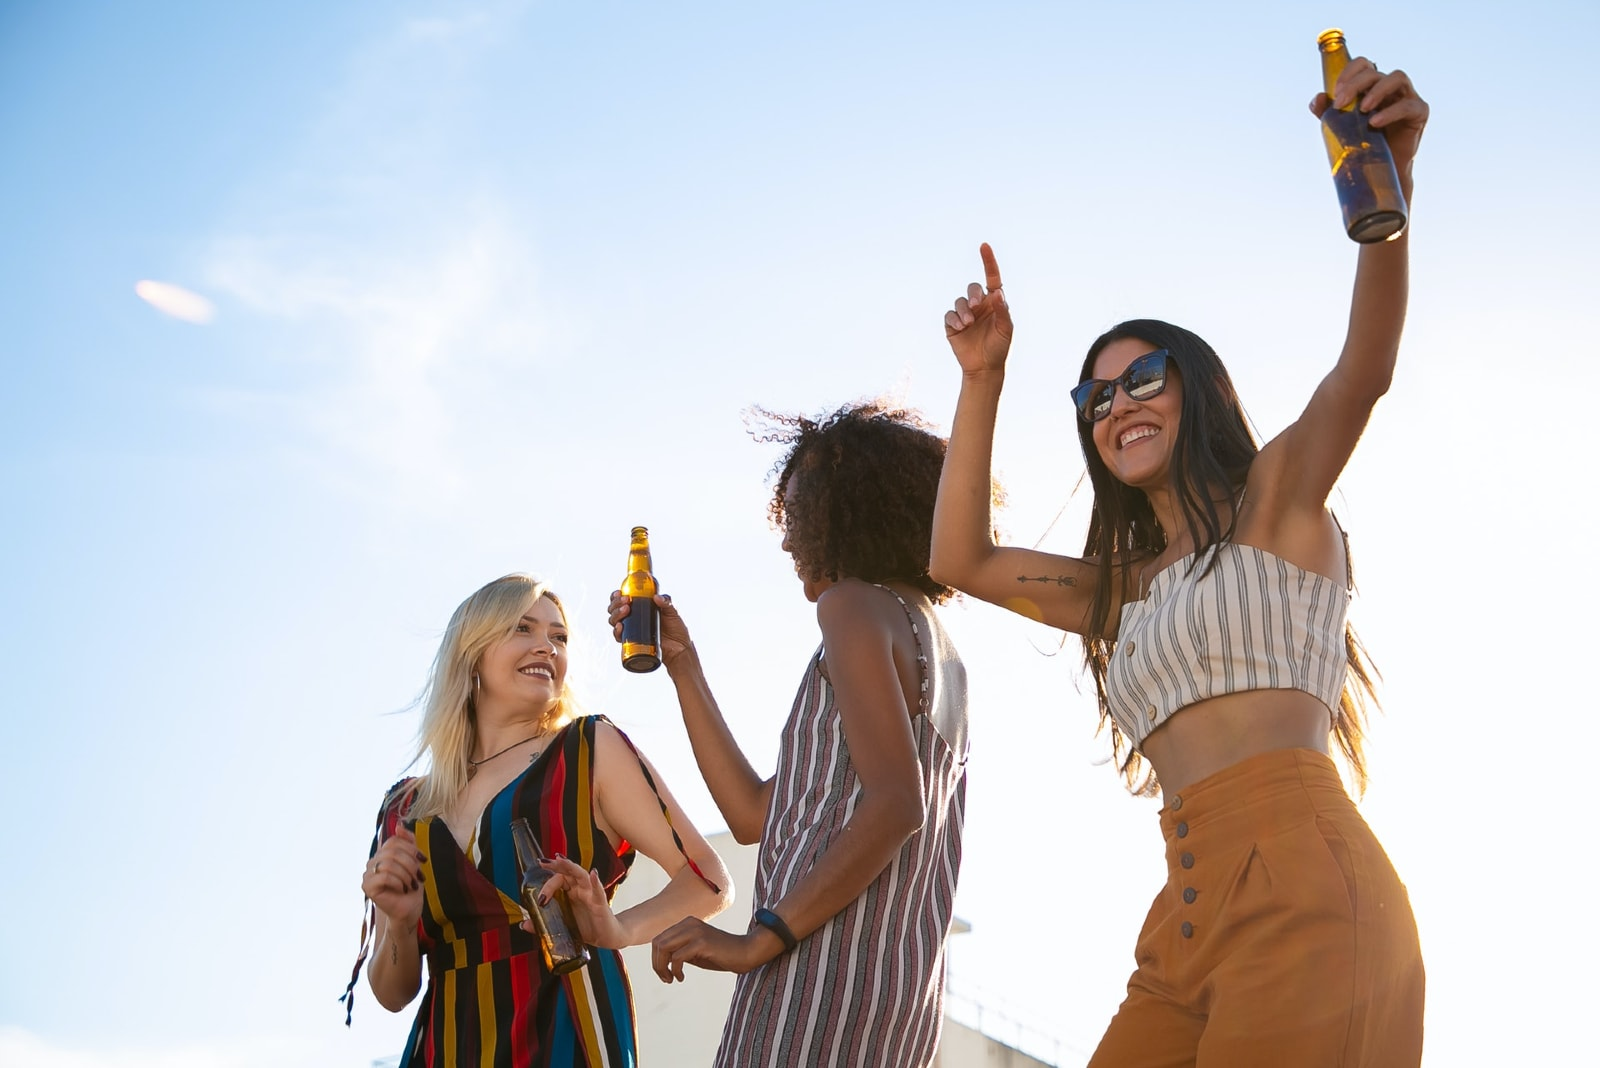 three women drinking beer while dancing on rooftop